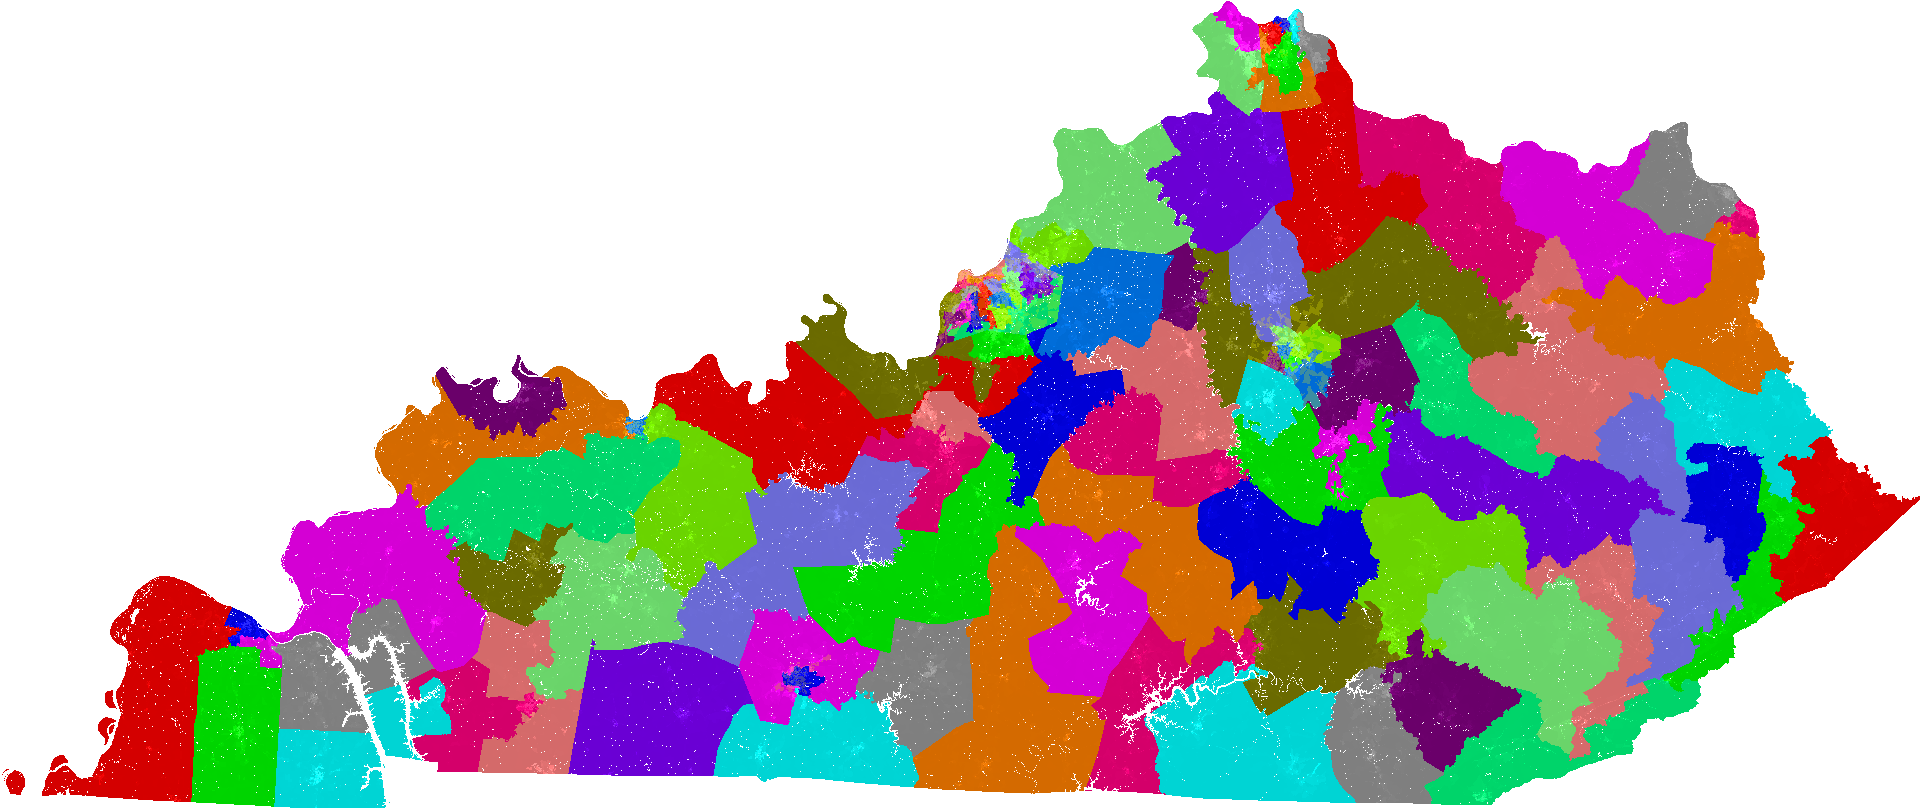 Kentucky House Of Representatives Redistricting